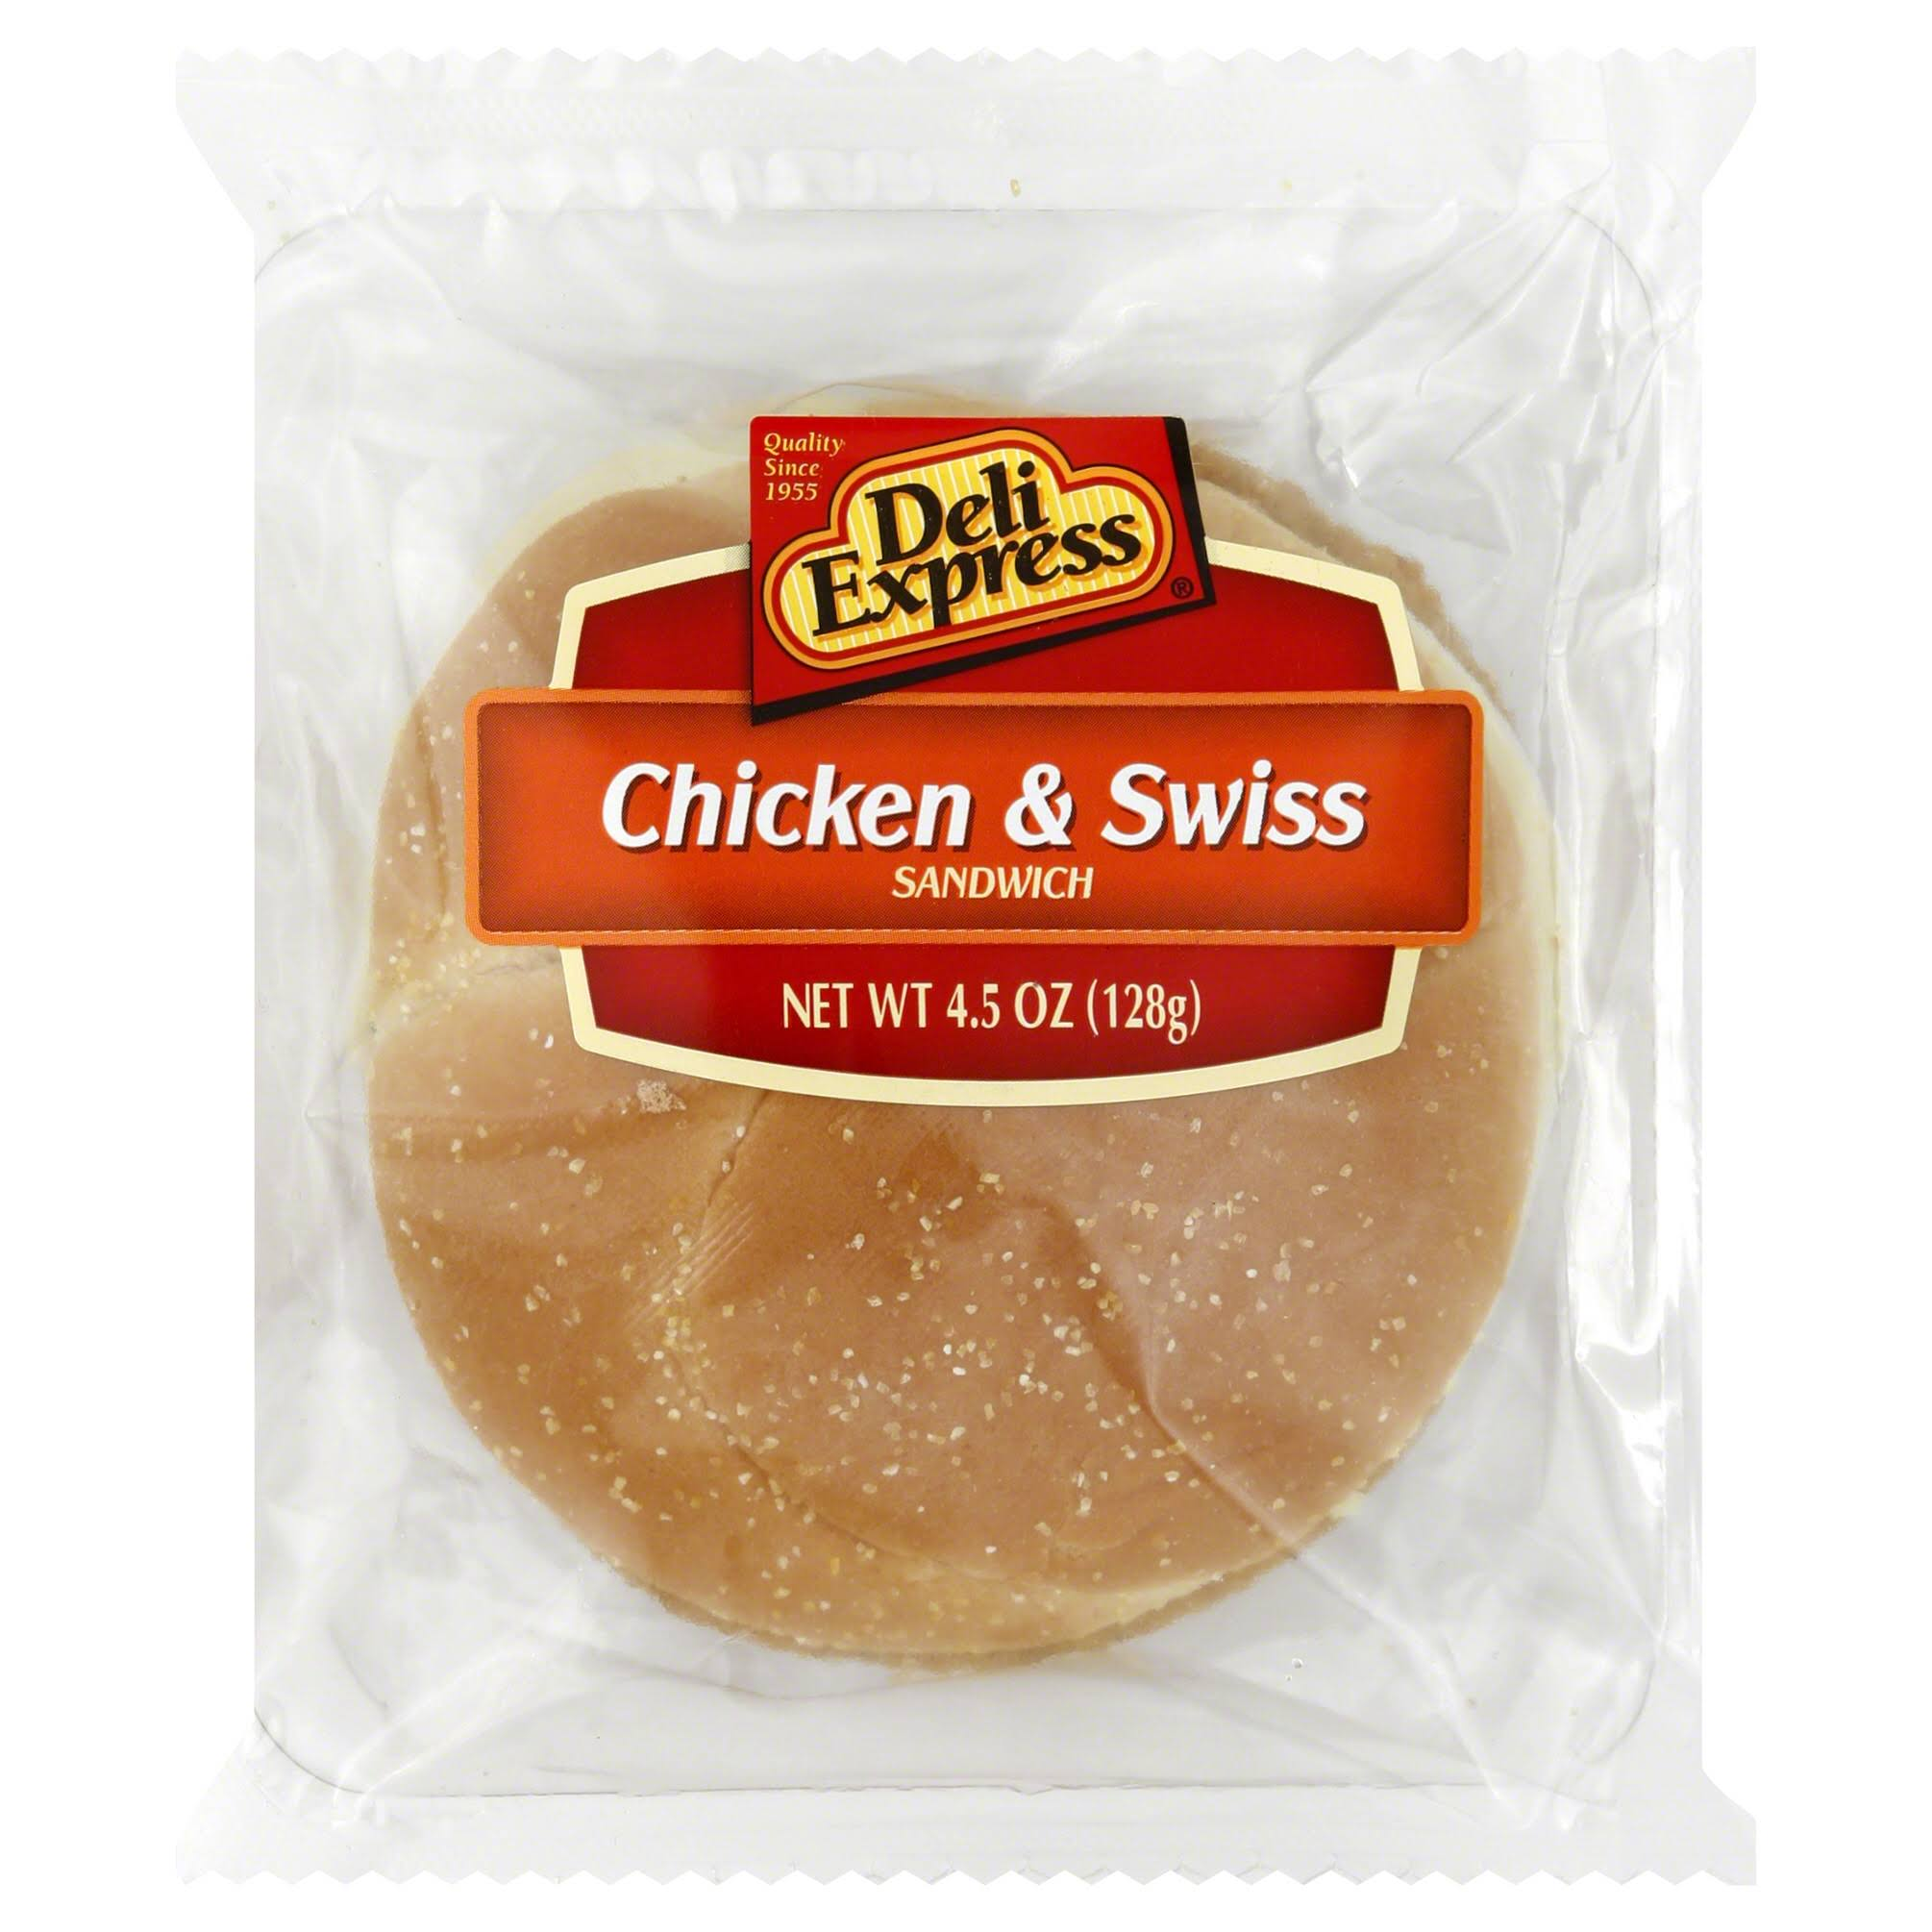 Deli Express Sandwich Chicken & Swiss